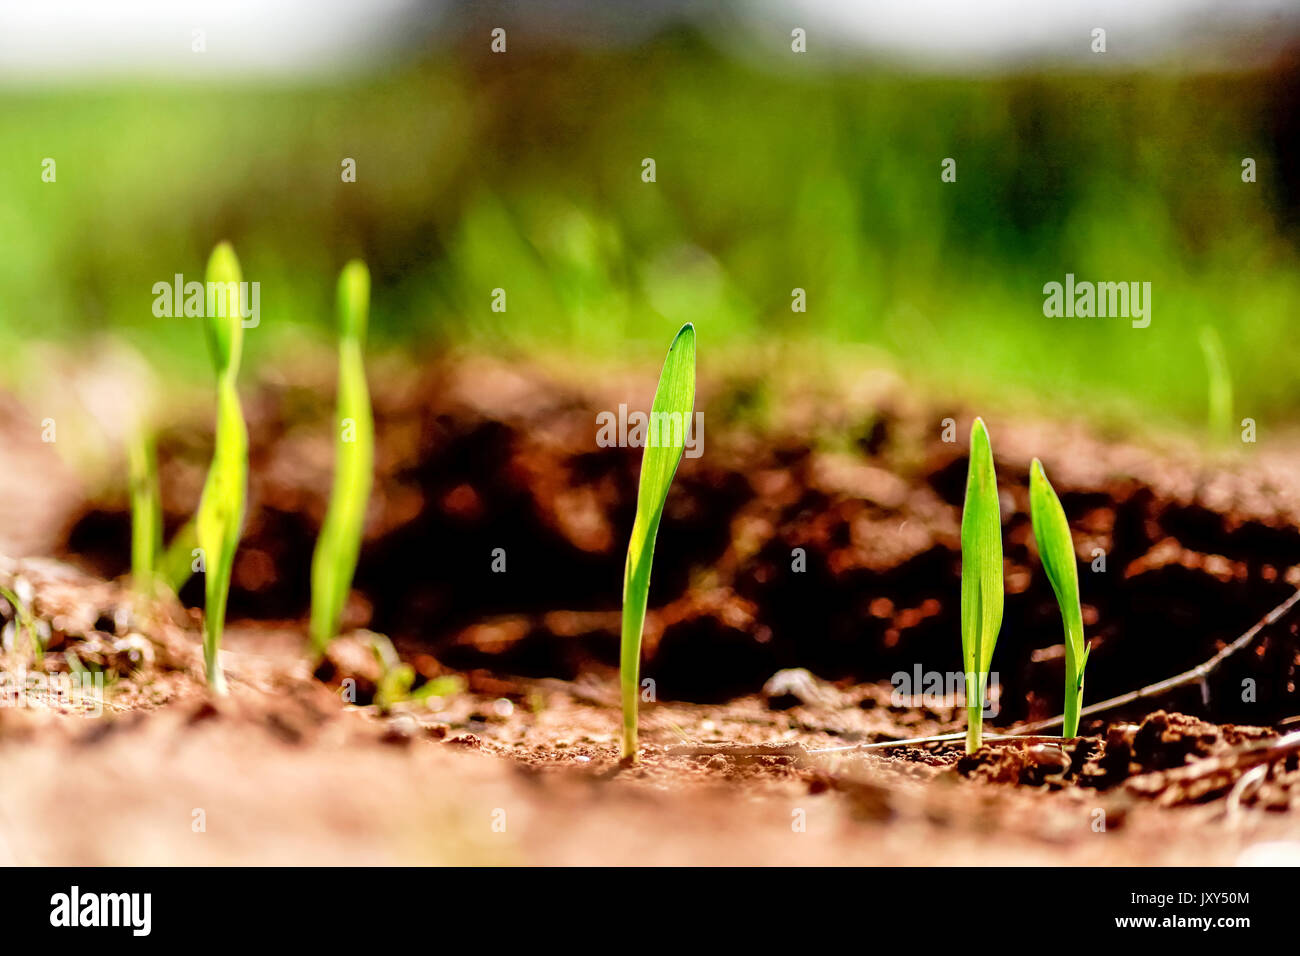 Grass blades grow out of the ground in a harsh environment - Stock Image